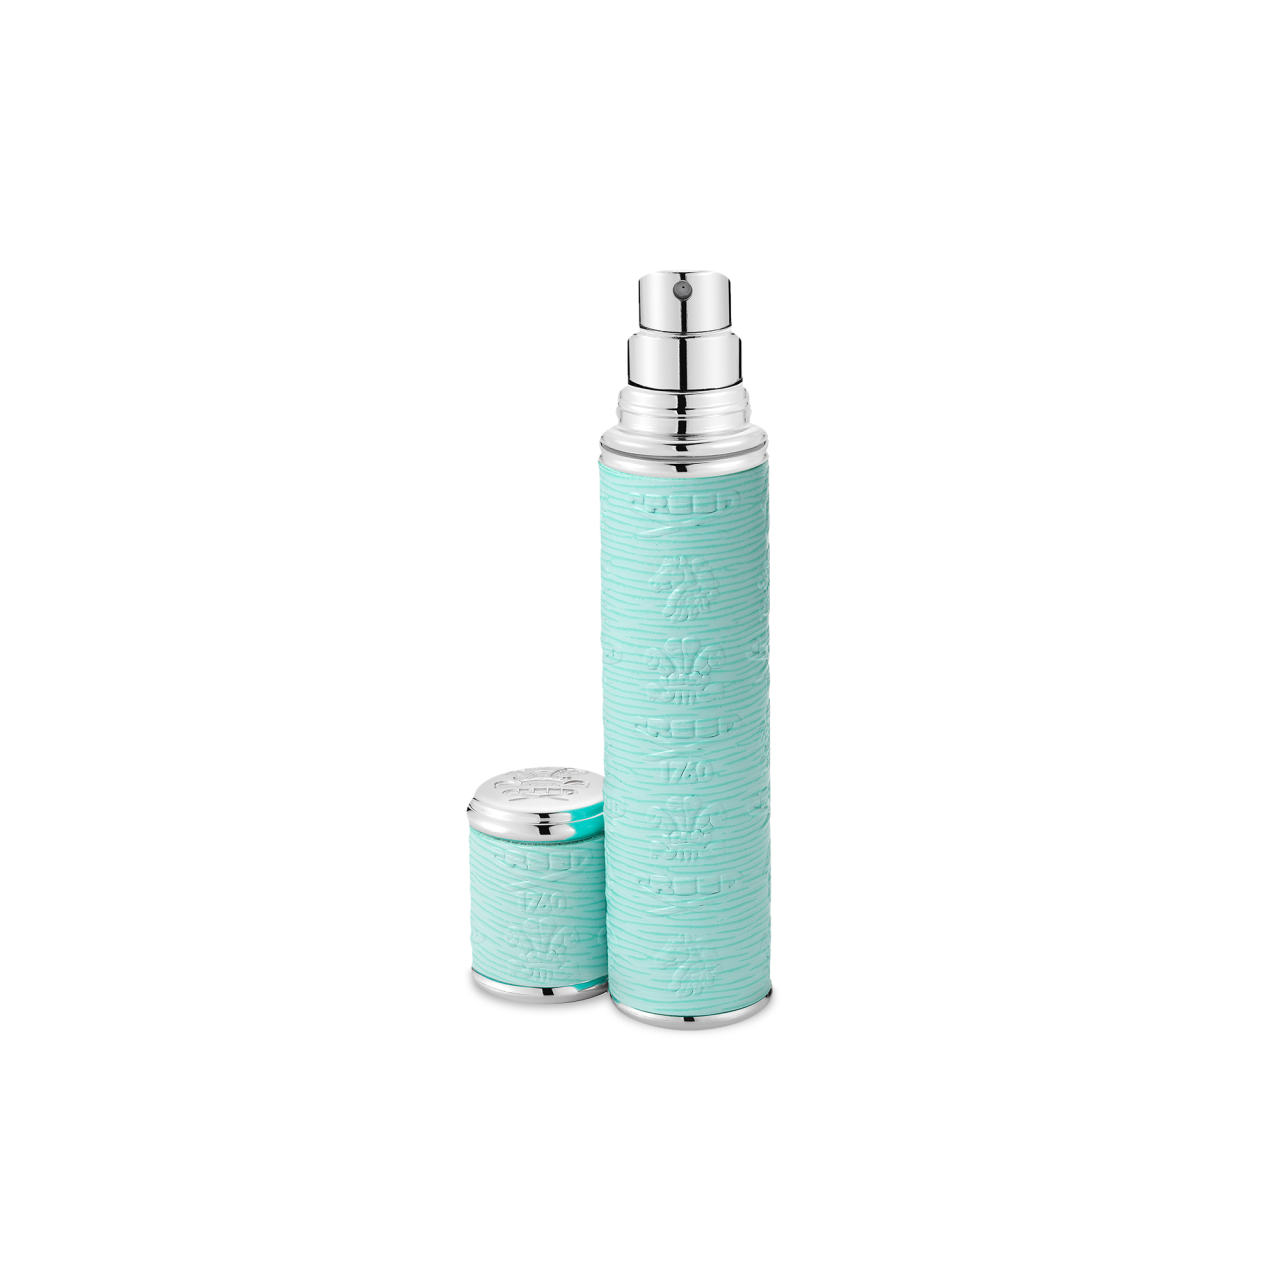 Turquoise With Silver Trim Pocket Atomizer